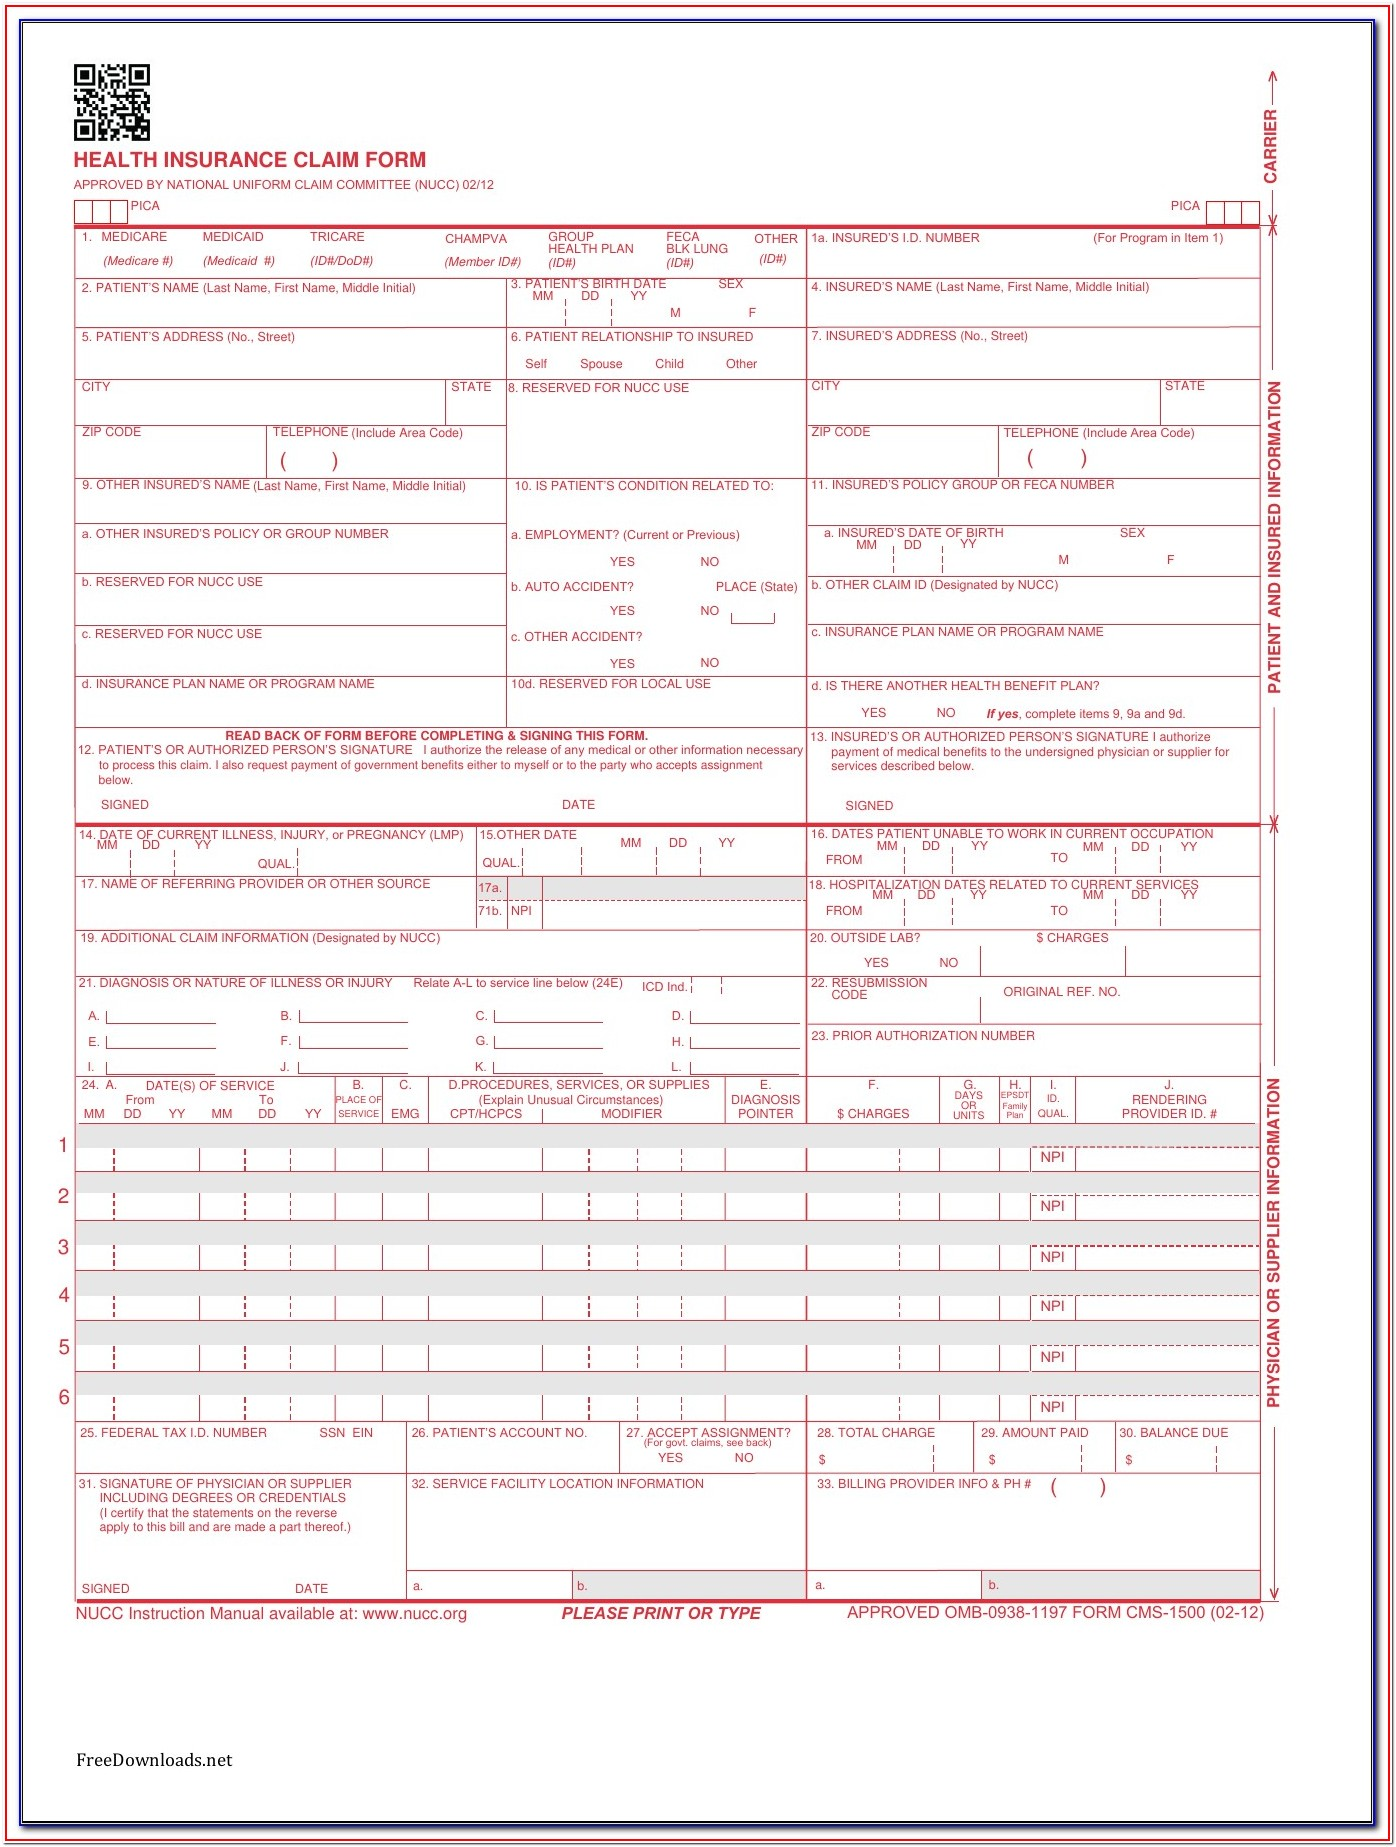 Cms 1500 Billing Form Instructions